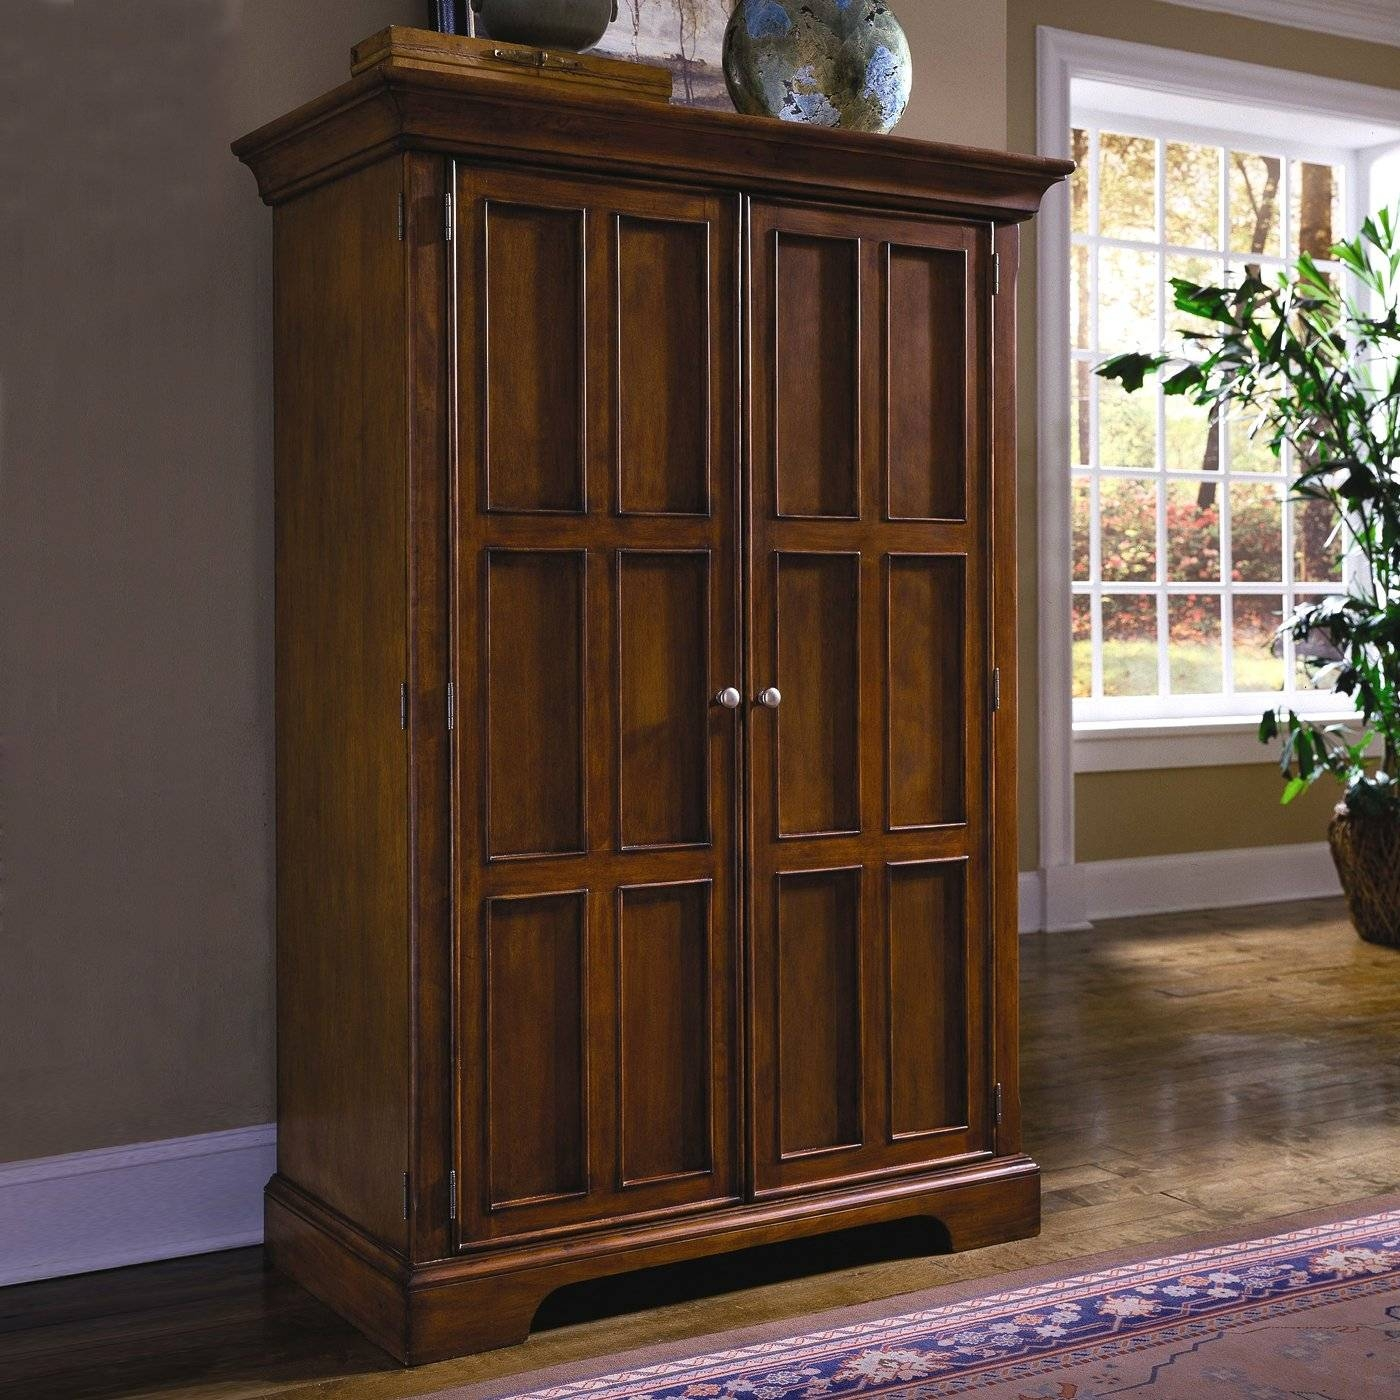 Furniture: Fancy Wardrobe Armoire For Wardrobe Organizer Idea throughout Dark Wood Wardrobes Armoires (Image 17 of 30)